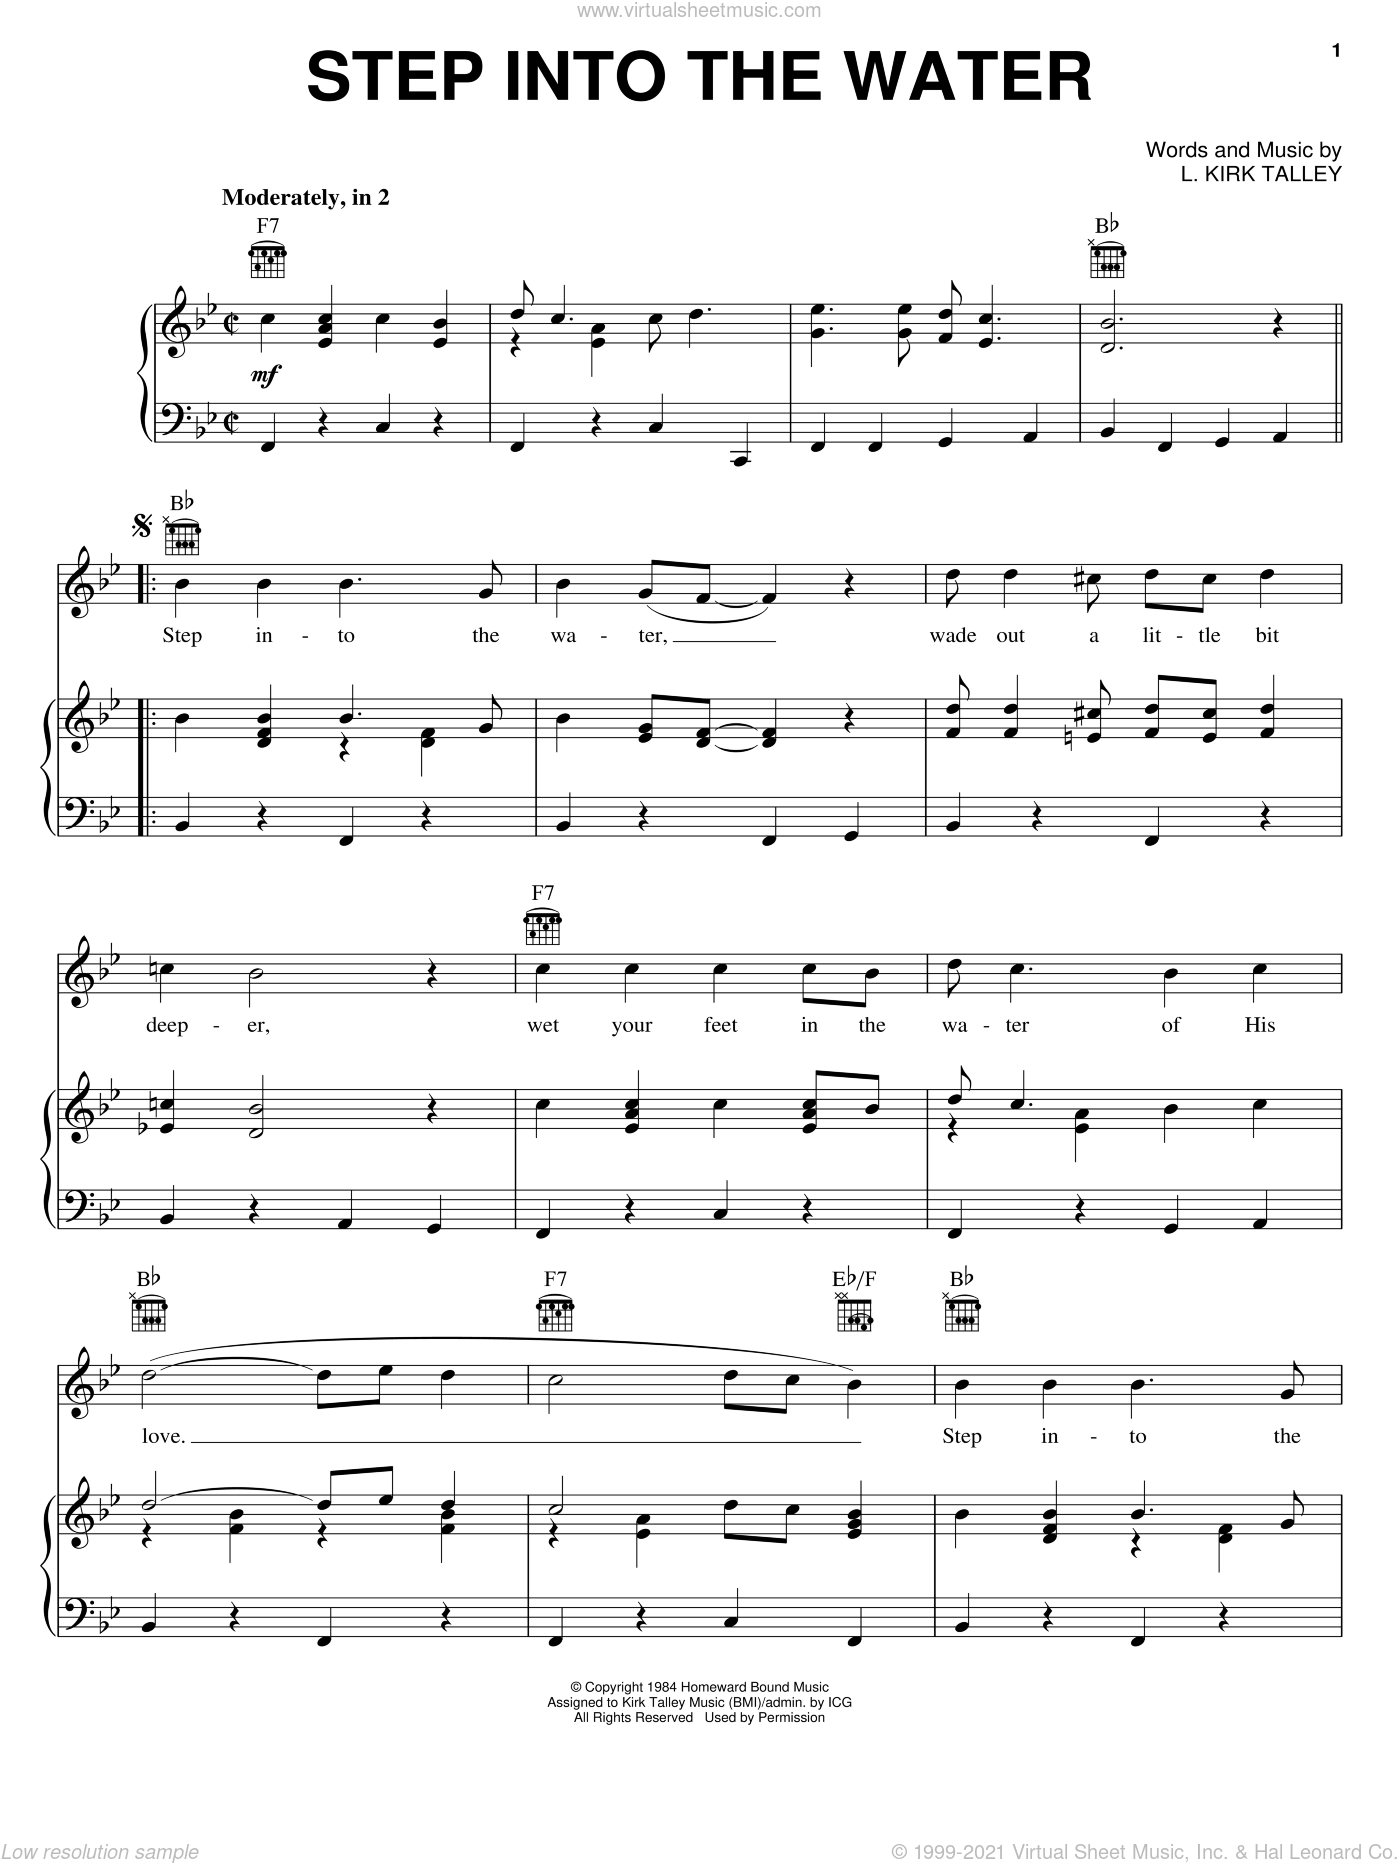 Step Into The Water sheet music for voice, piano or guitar by Kirk Talley